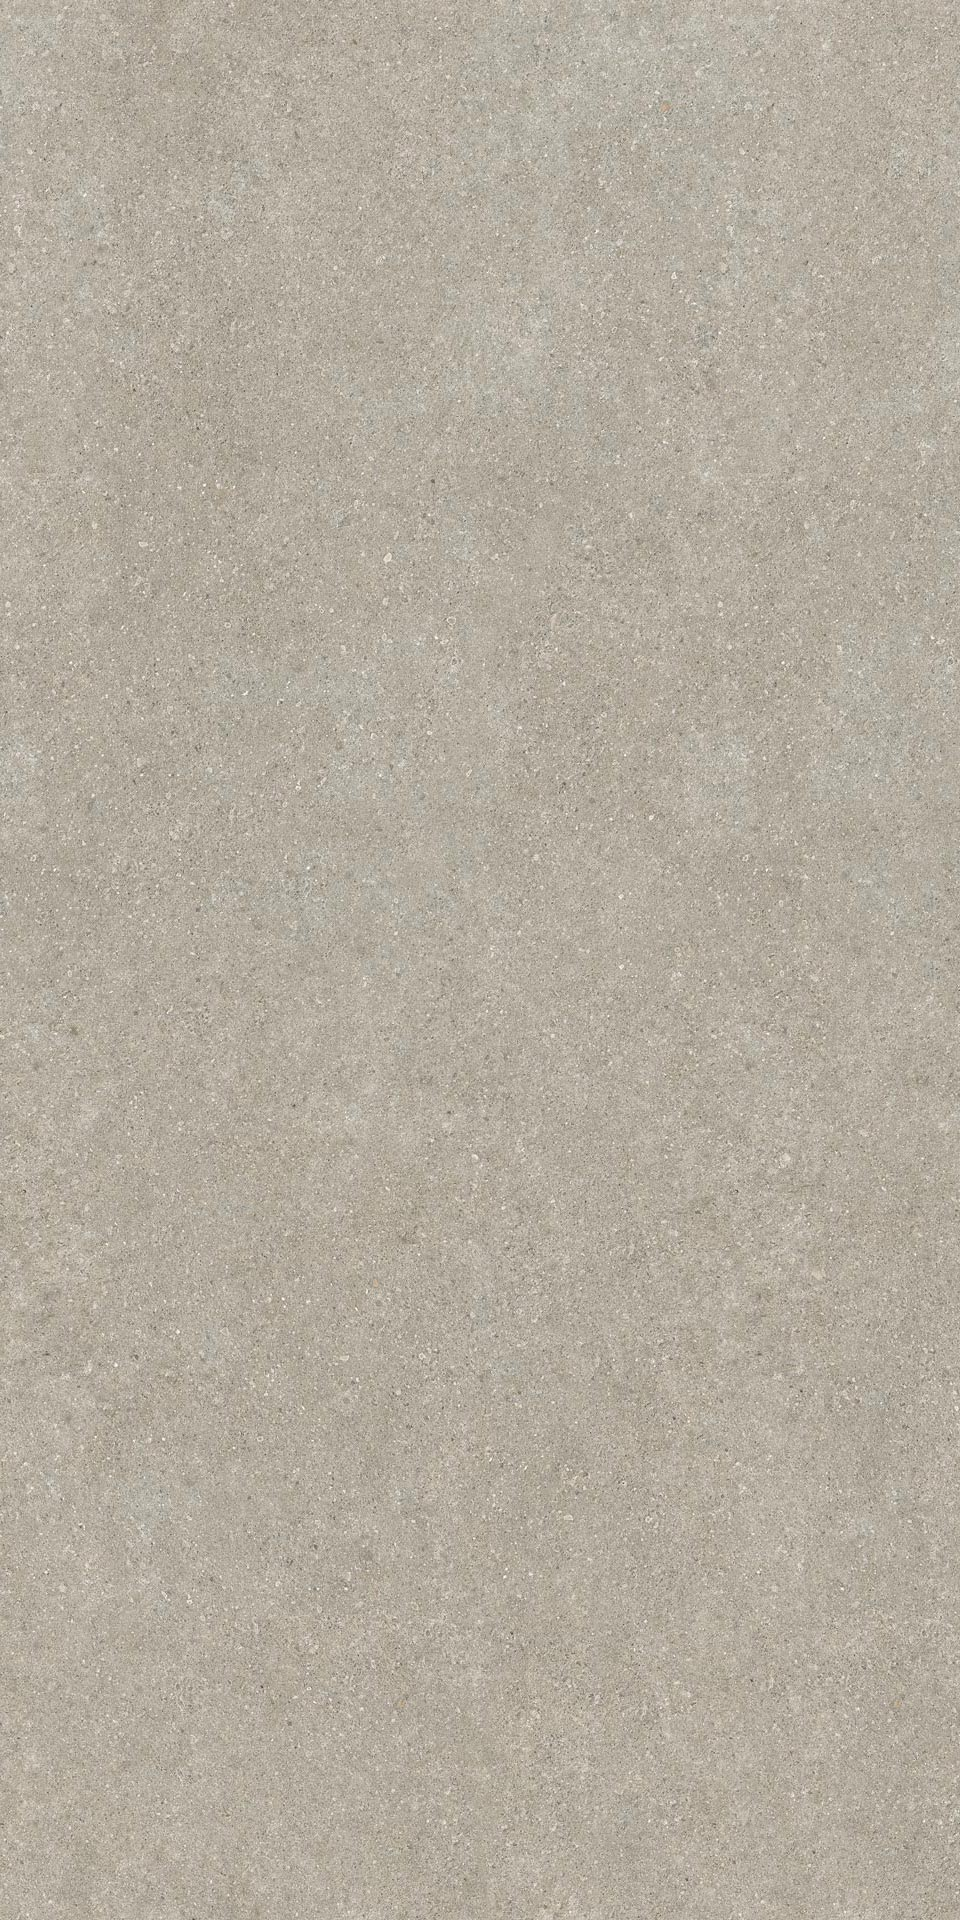 large-surface-in-porcelain-tile-for-indoors-and-outdoors-atlas-plan